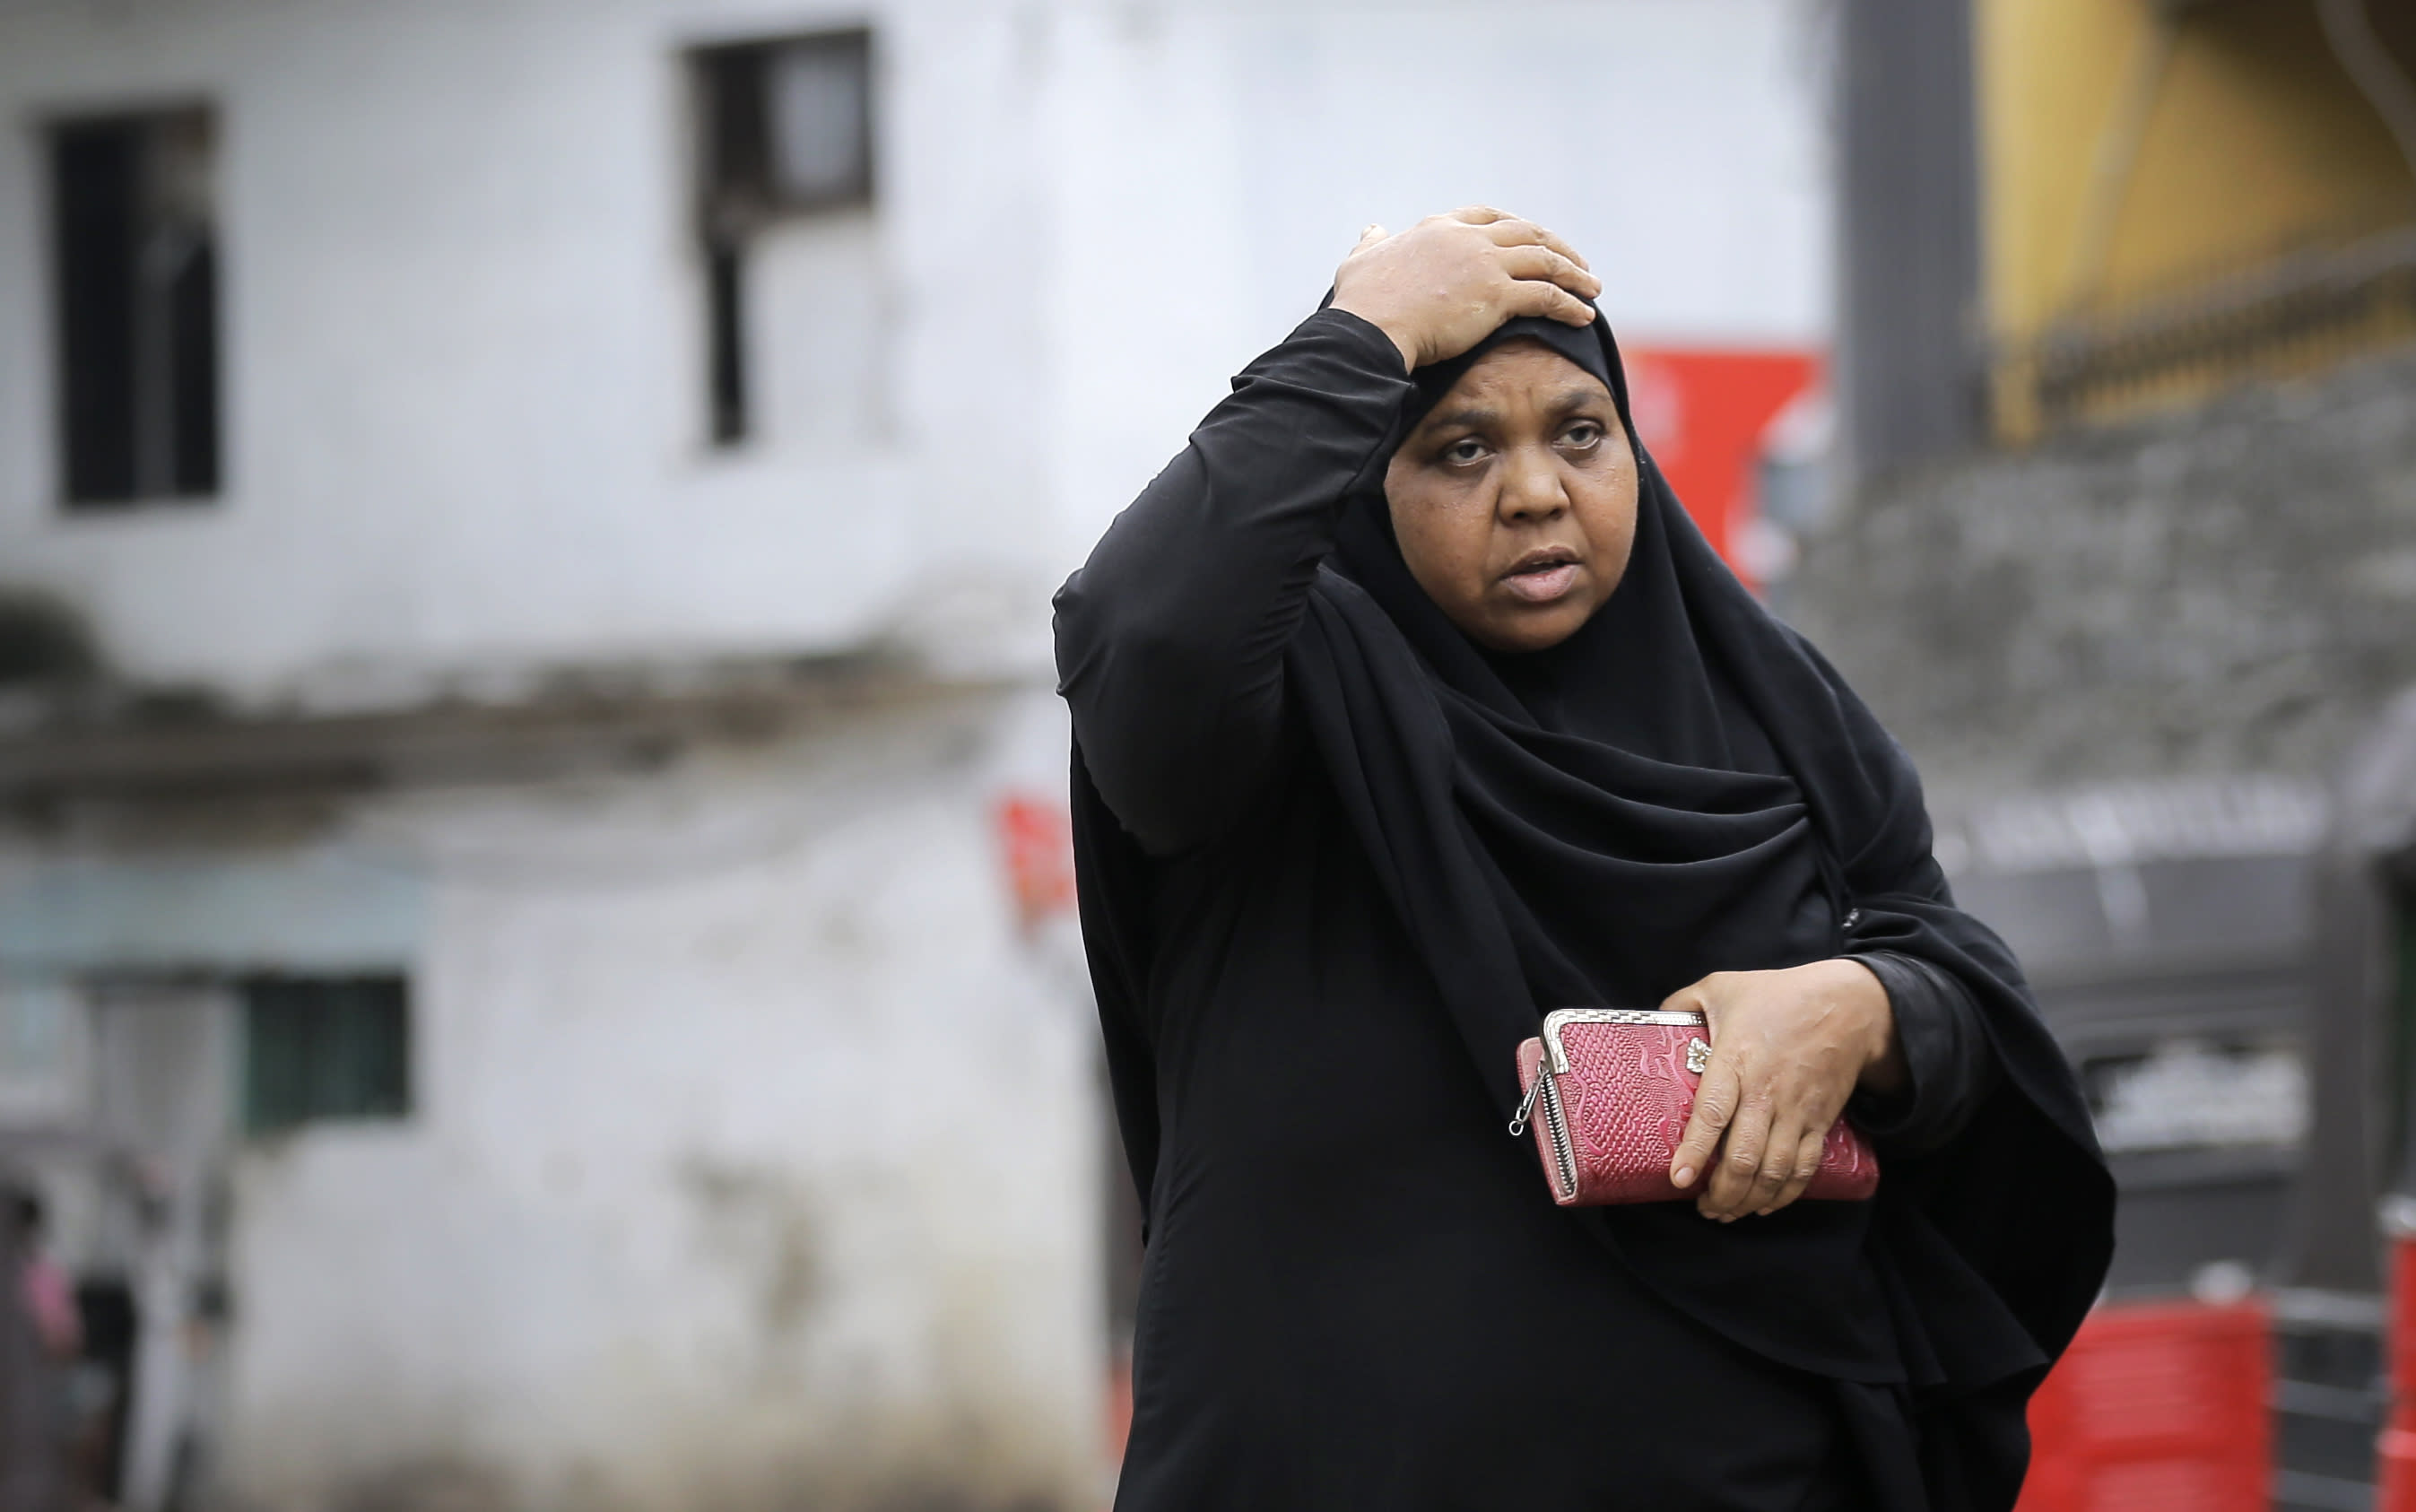 A Sri Lankan Muslim woman walks in a street in Colombo, Sri Lanka, Tuesday, Aug. 27, 2019. A Sri Lankan Muslim woman walks in a street in Colombo, Sri Lanka, Tuesday, Aug. 27, 2019. Islamic clerics in Sri Lanka asked Muslim women on Tuesday to continue to avoid wearing face veils until the government clarifies whether they are once again allowed now that emergency rule has ended four months after a string of suicide bomb attacks. (AP Photo/Eranga Jayawardena)